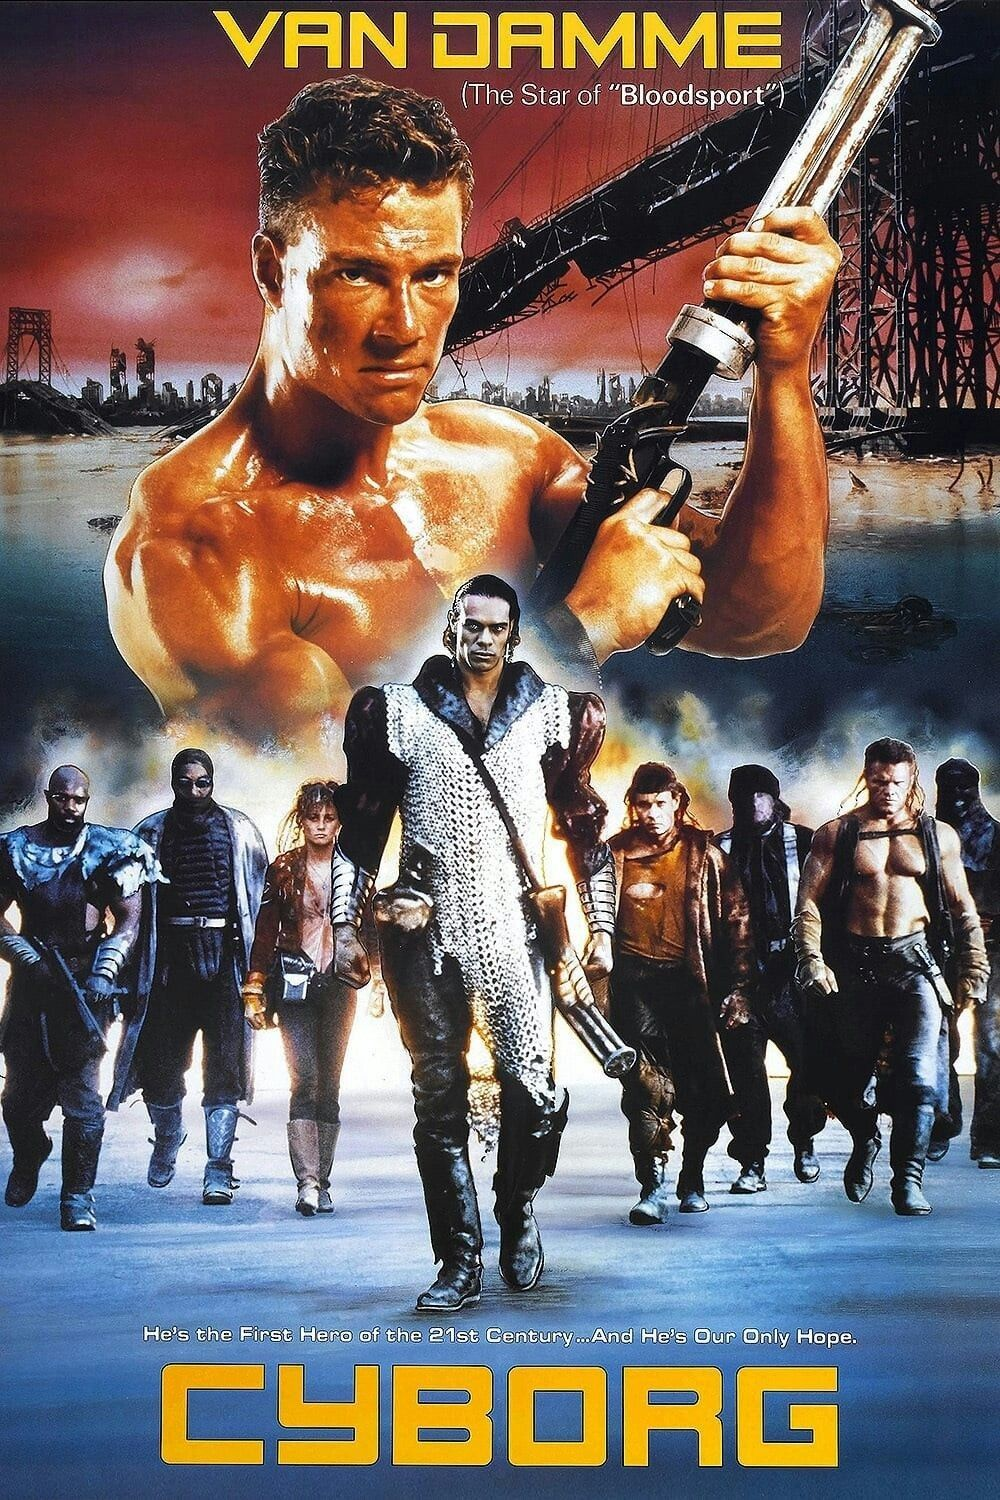 Pin By Steve D Bates On All Time Fave Movies Cyborg Movie Cannon Film Movie Posters